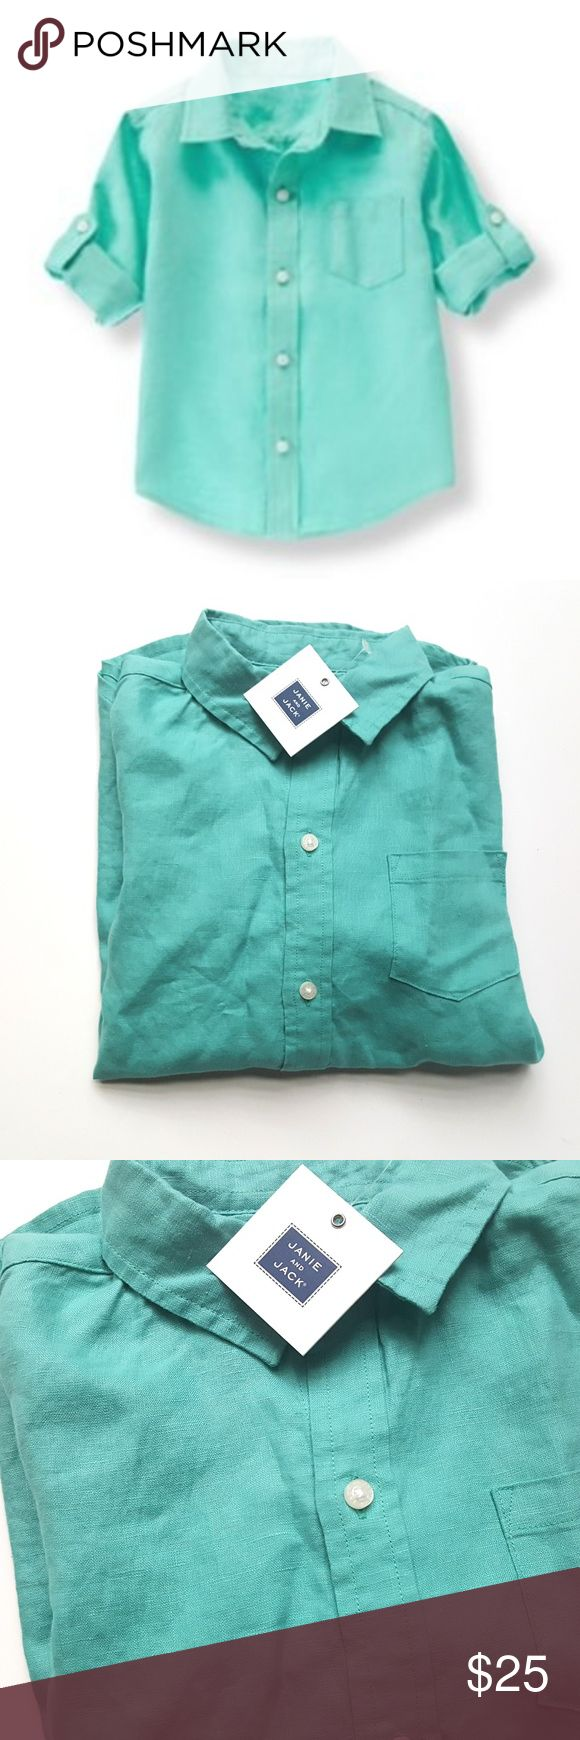 Janie and Jack 8 NEW Paradise Cruise Linen Shirt Janie and Jack Paradise Cruise Linen Shirt Top Aqua Button Down  Size 8  Condition: Nwt  My items come from a smoke-free household, we do have a kitty, so an occasional hair may occur! Janie and Jack Shirts & Tops Button Down Shirts